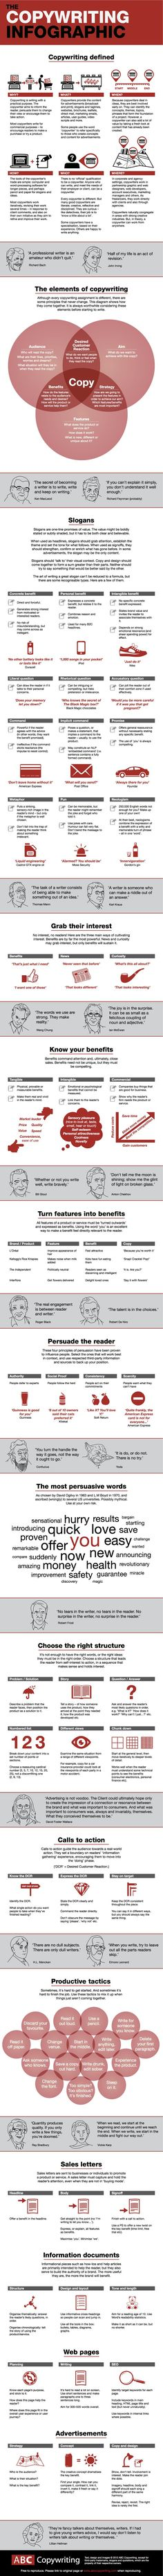 The Copywriting Infographic